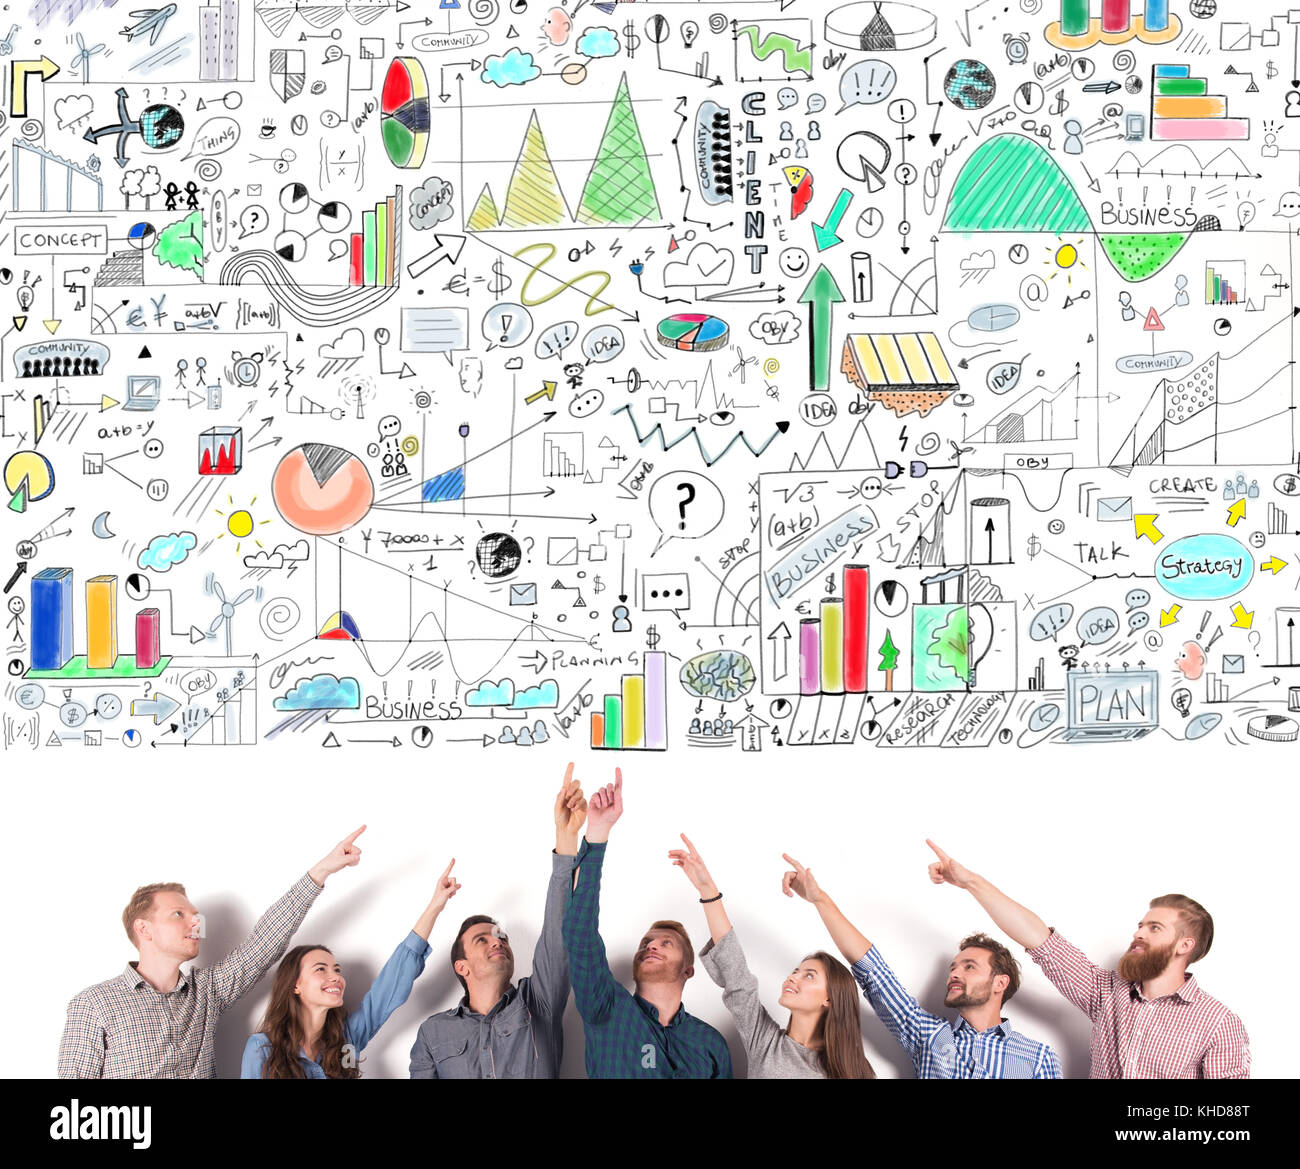 Business team indicate a business project. concept of creative idea and teamwork - Stock Image